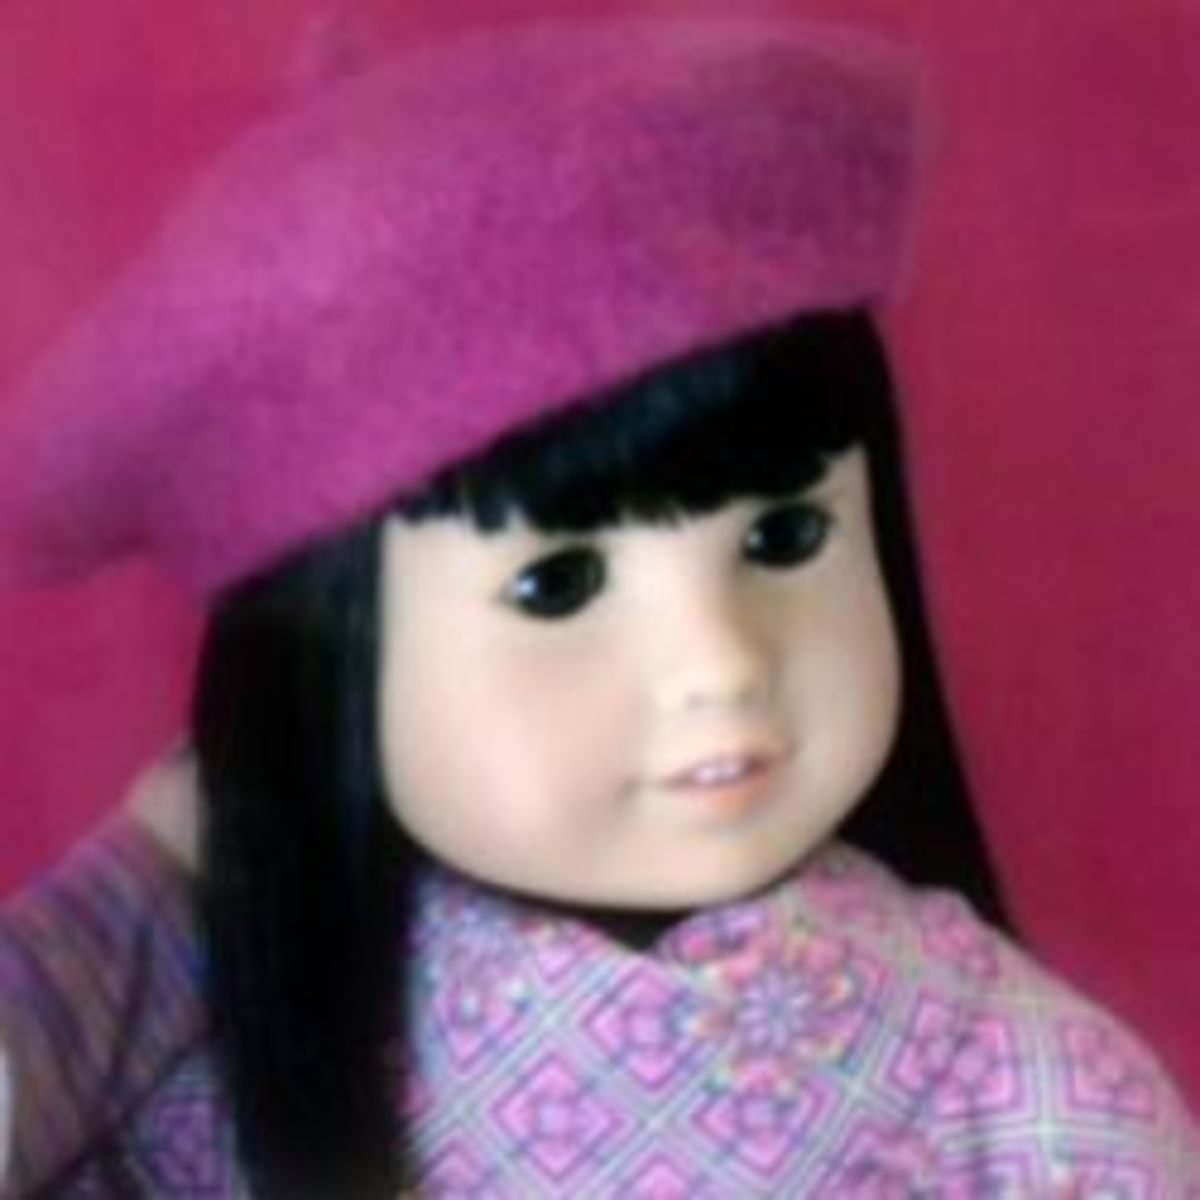 Asian Dolls: Representing our World